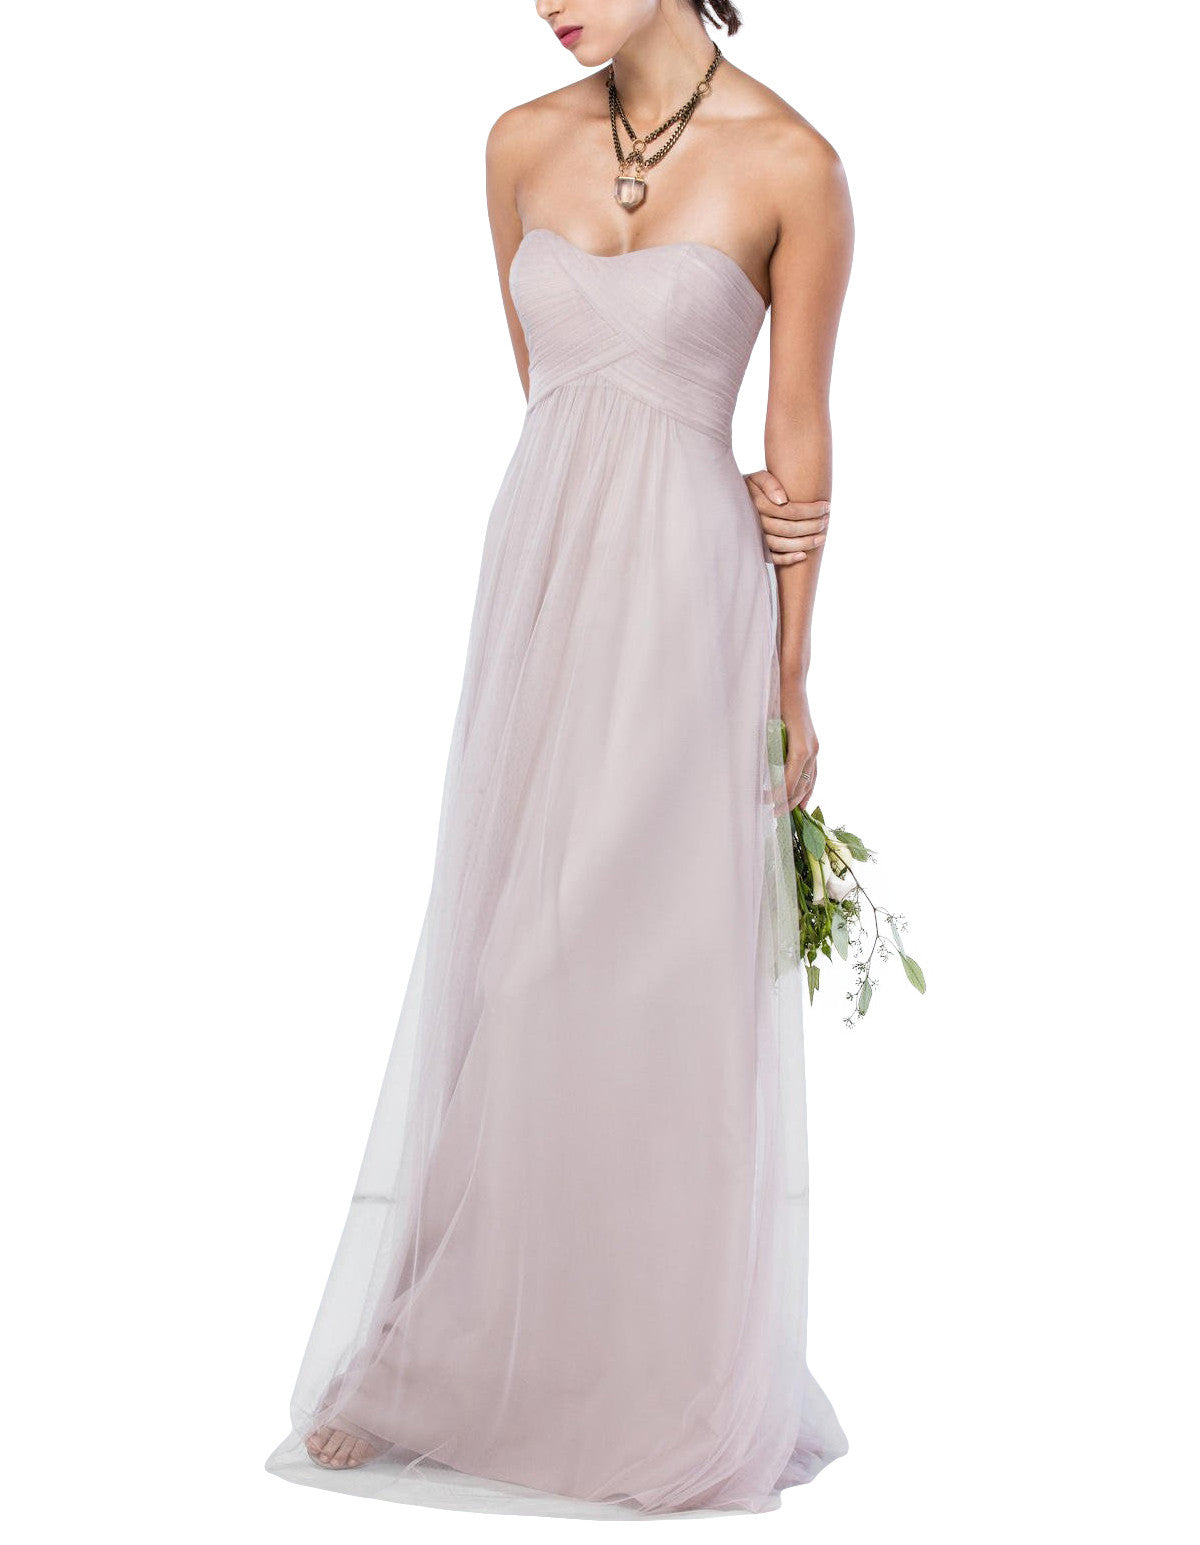 2b0549ba63d Wtoo by Watters Style 342 Bridesmaid Dress